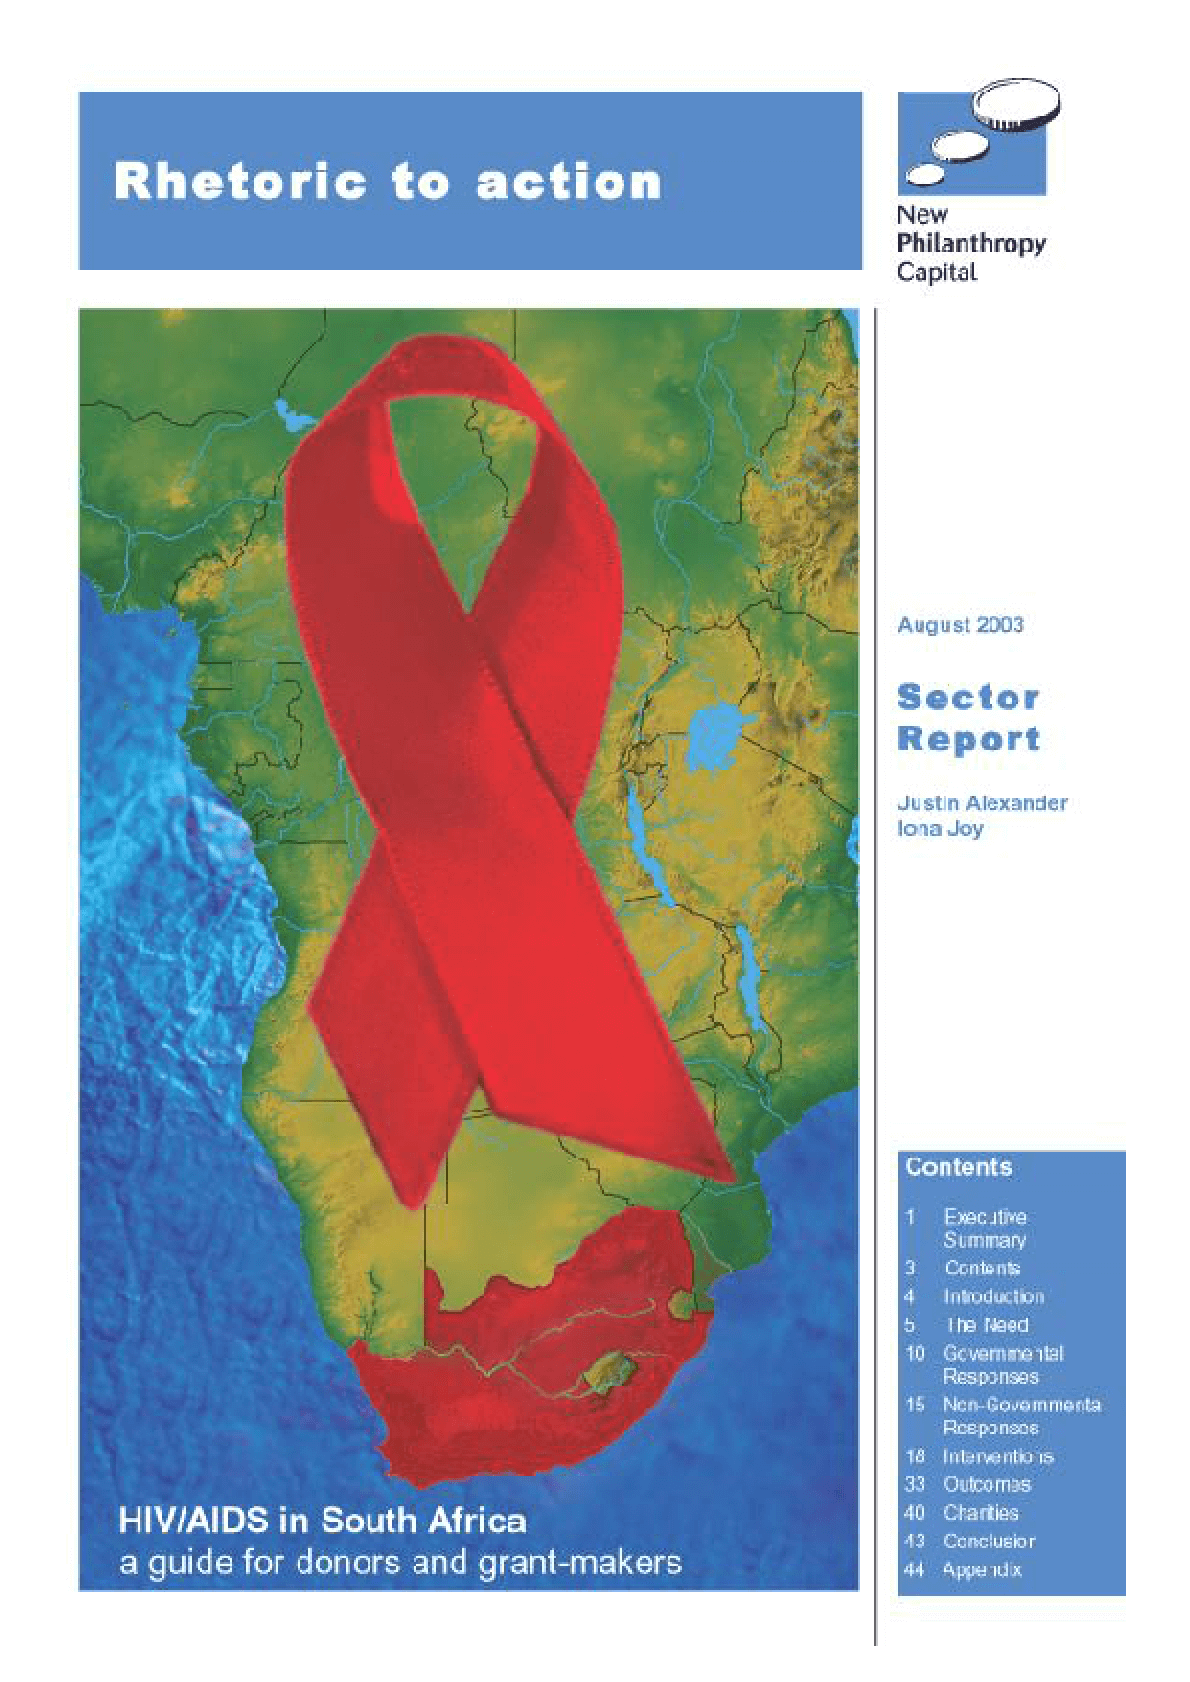 HIV/AIDS in South Africa: A Guide For Donors and Grant-makers